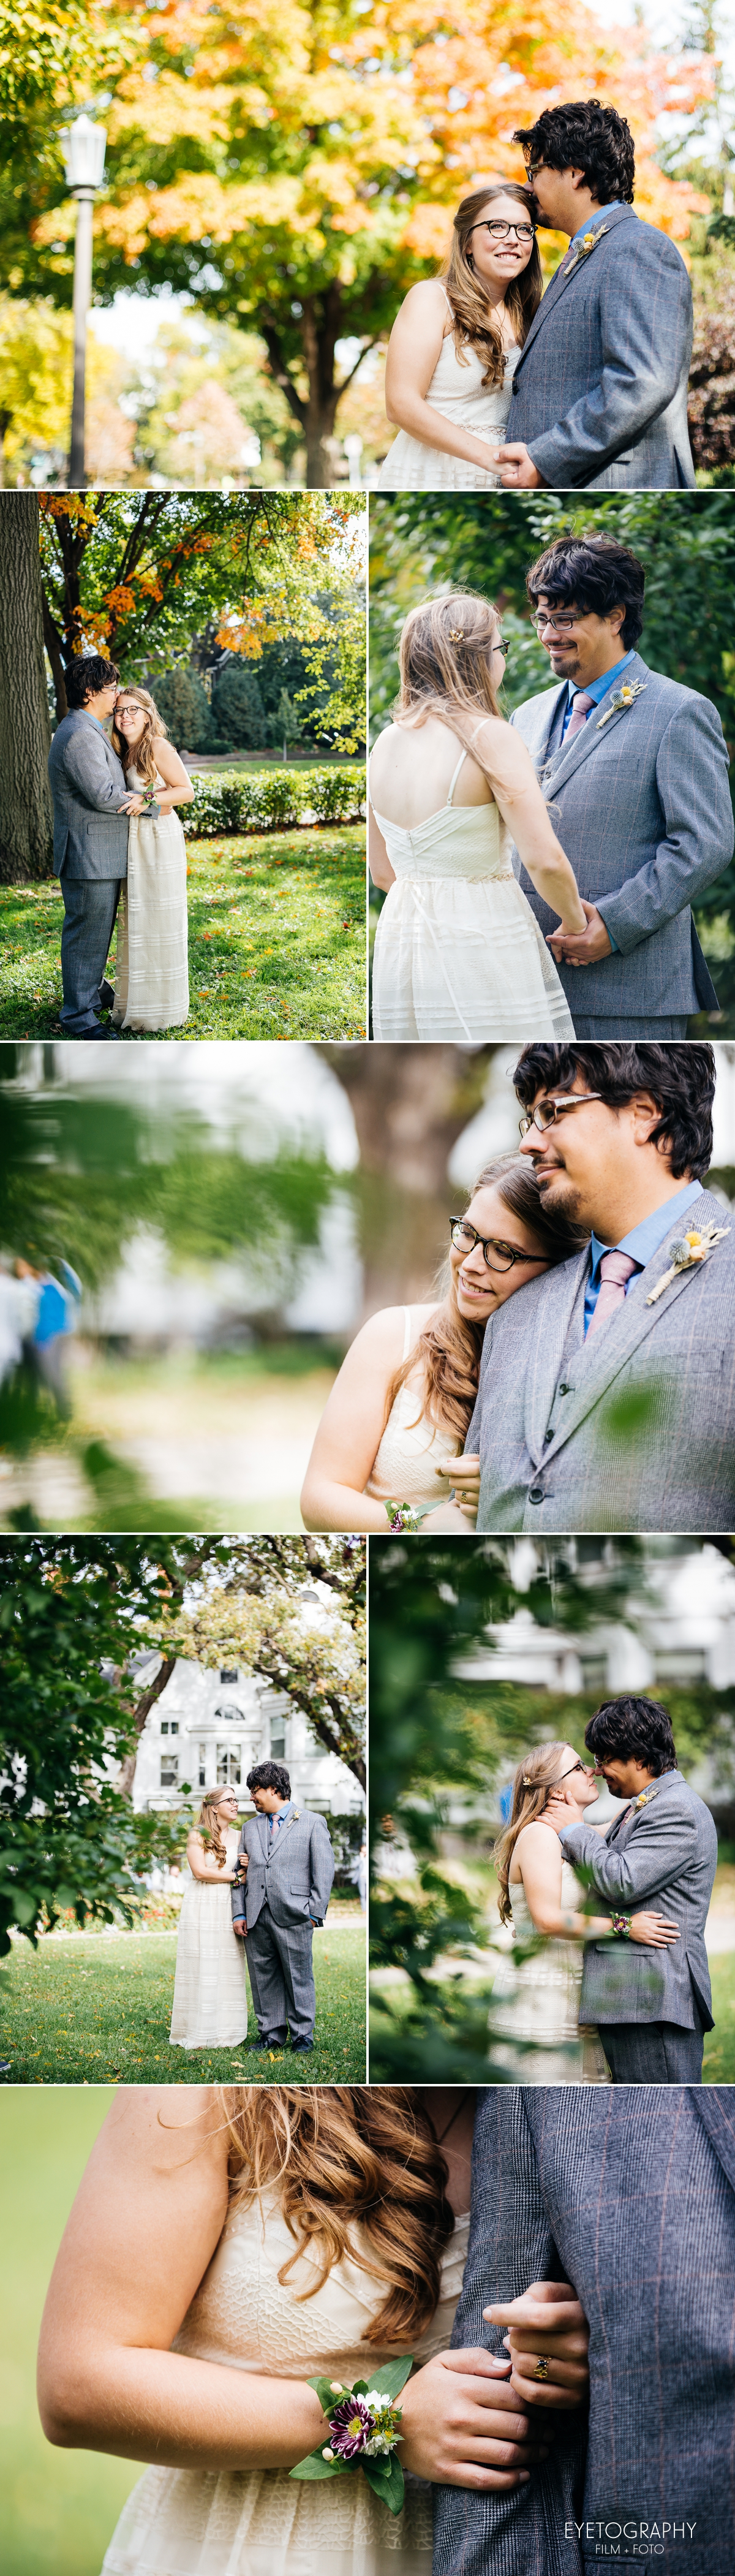 St. Paul Wedding Photography  - Eyetography Film + Foto | Heidi and Dan 5